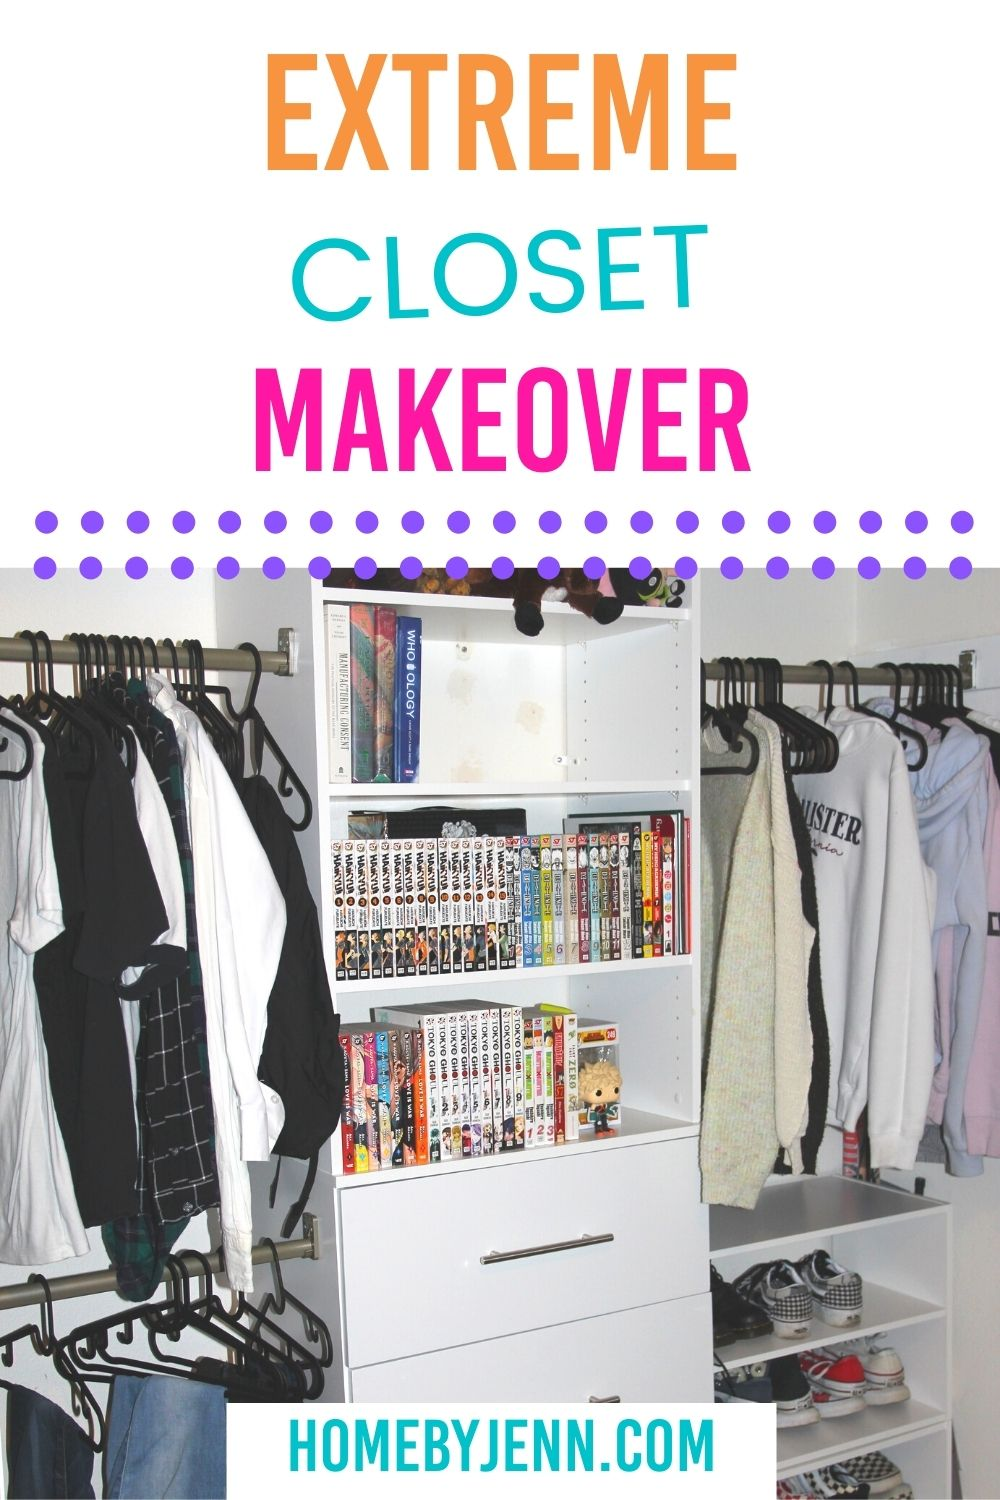 If you're looking to update your unfunctional reach-in closet you'll love this Closet Makeover. I took an outdated reach-in closet and transformed the space into a dreamy organized closet. I increased storage space and made this closet look up to date. via @homebyjenn